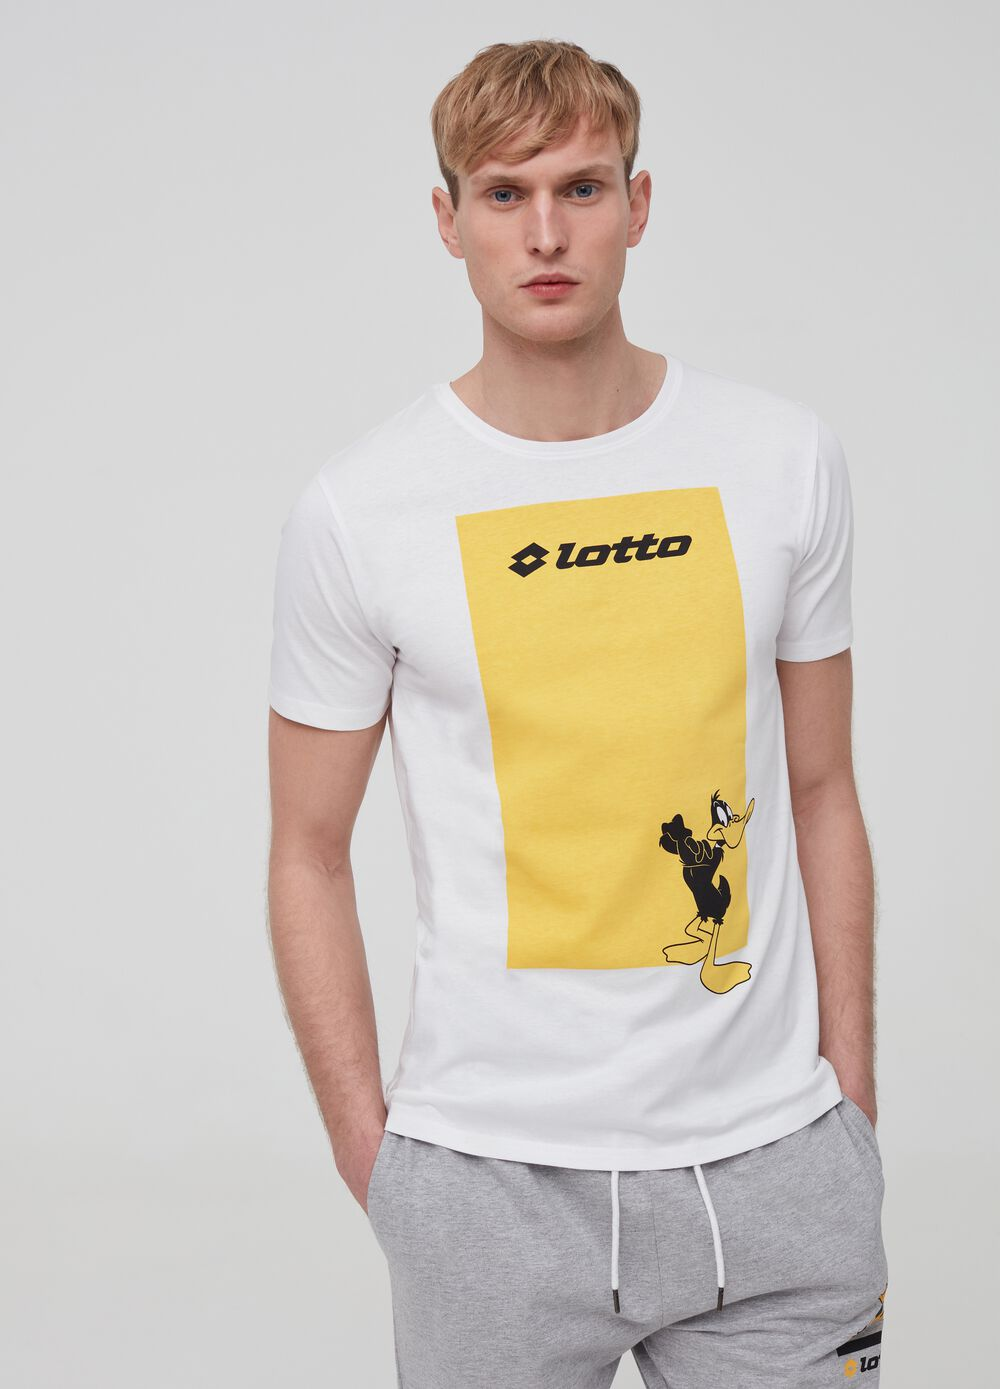 100% cotton T-shirt with Lotto print